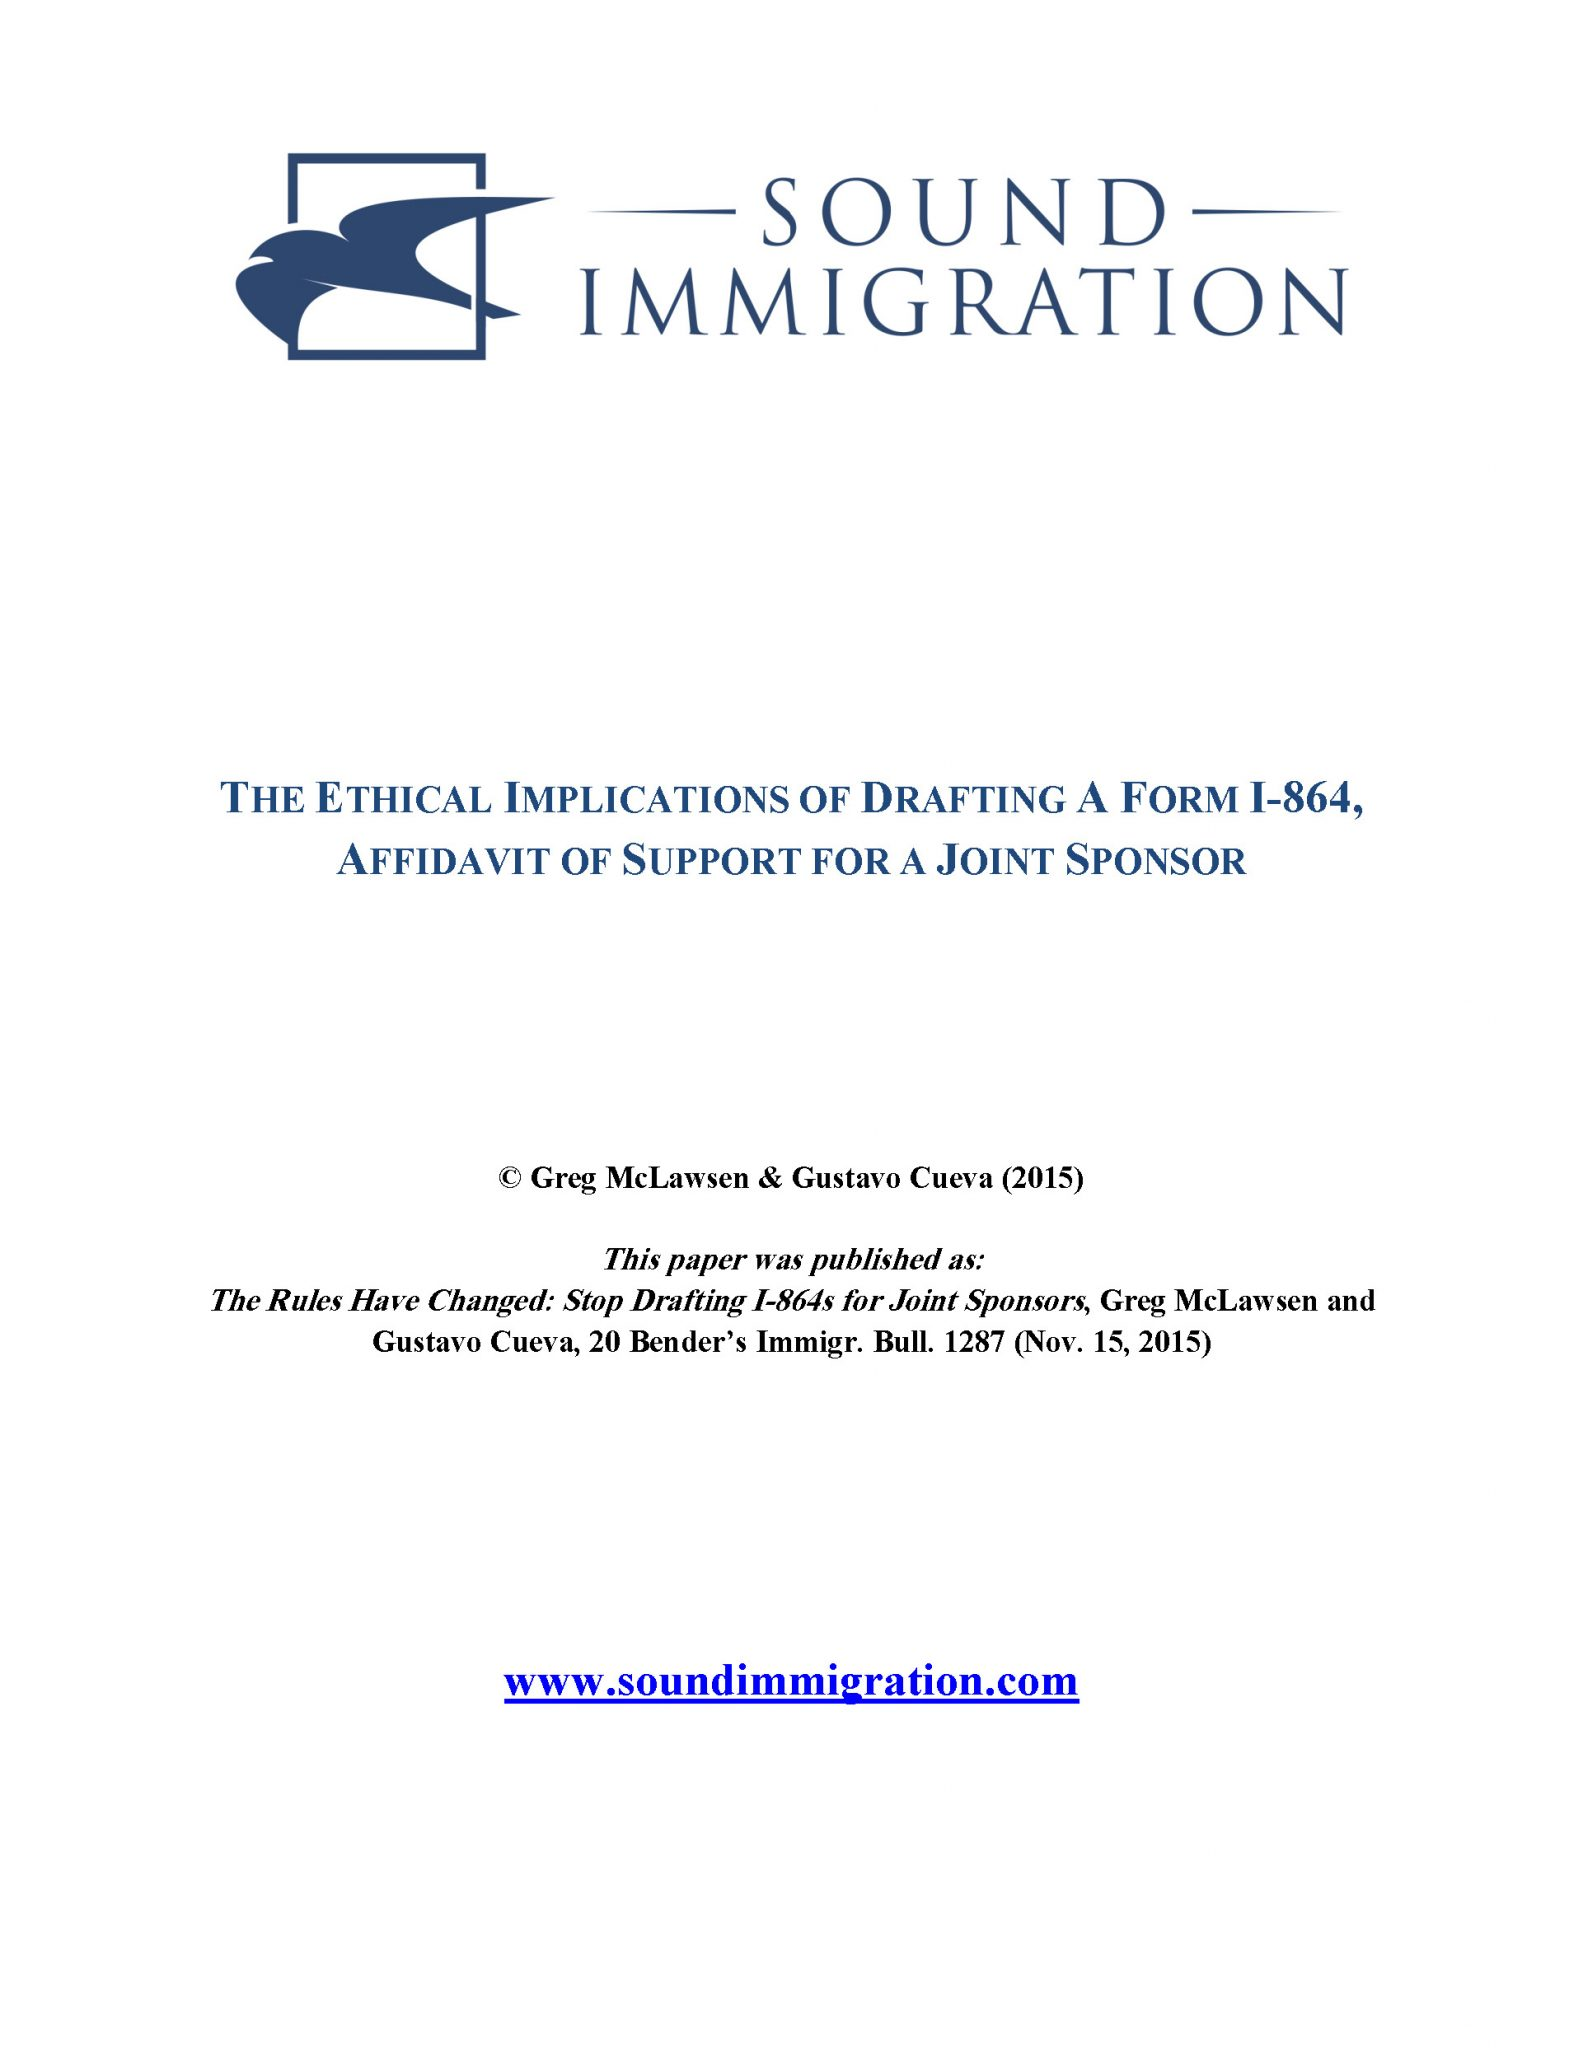 The Ethical Implications Of Drafting A Form I-864, Affidavit Of Support For A Joint Sponsor